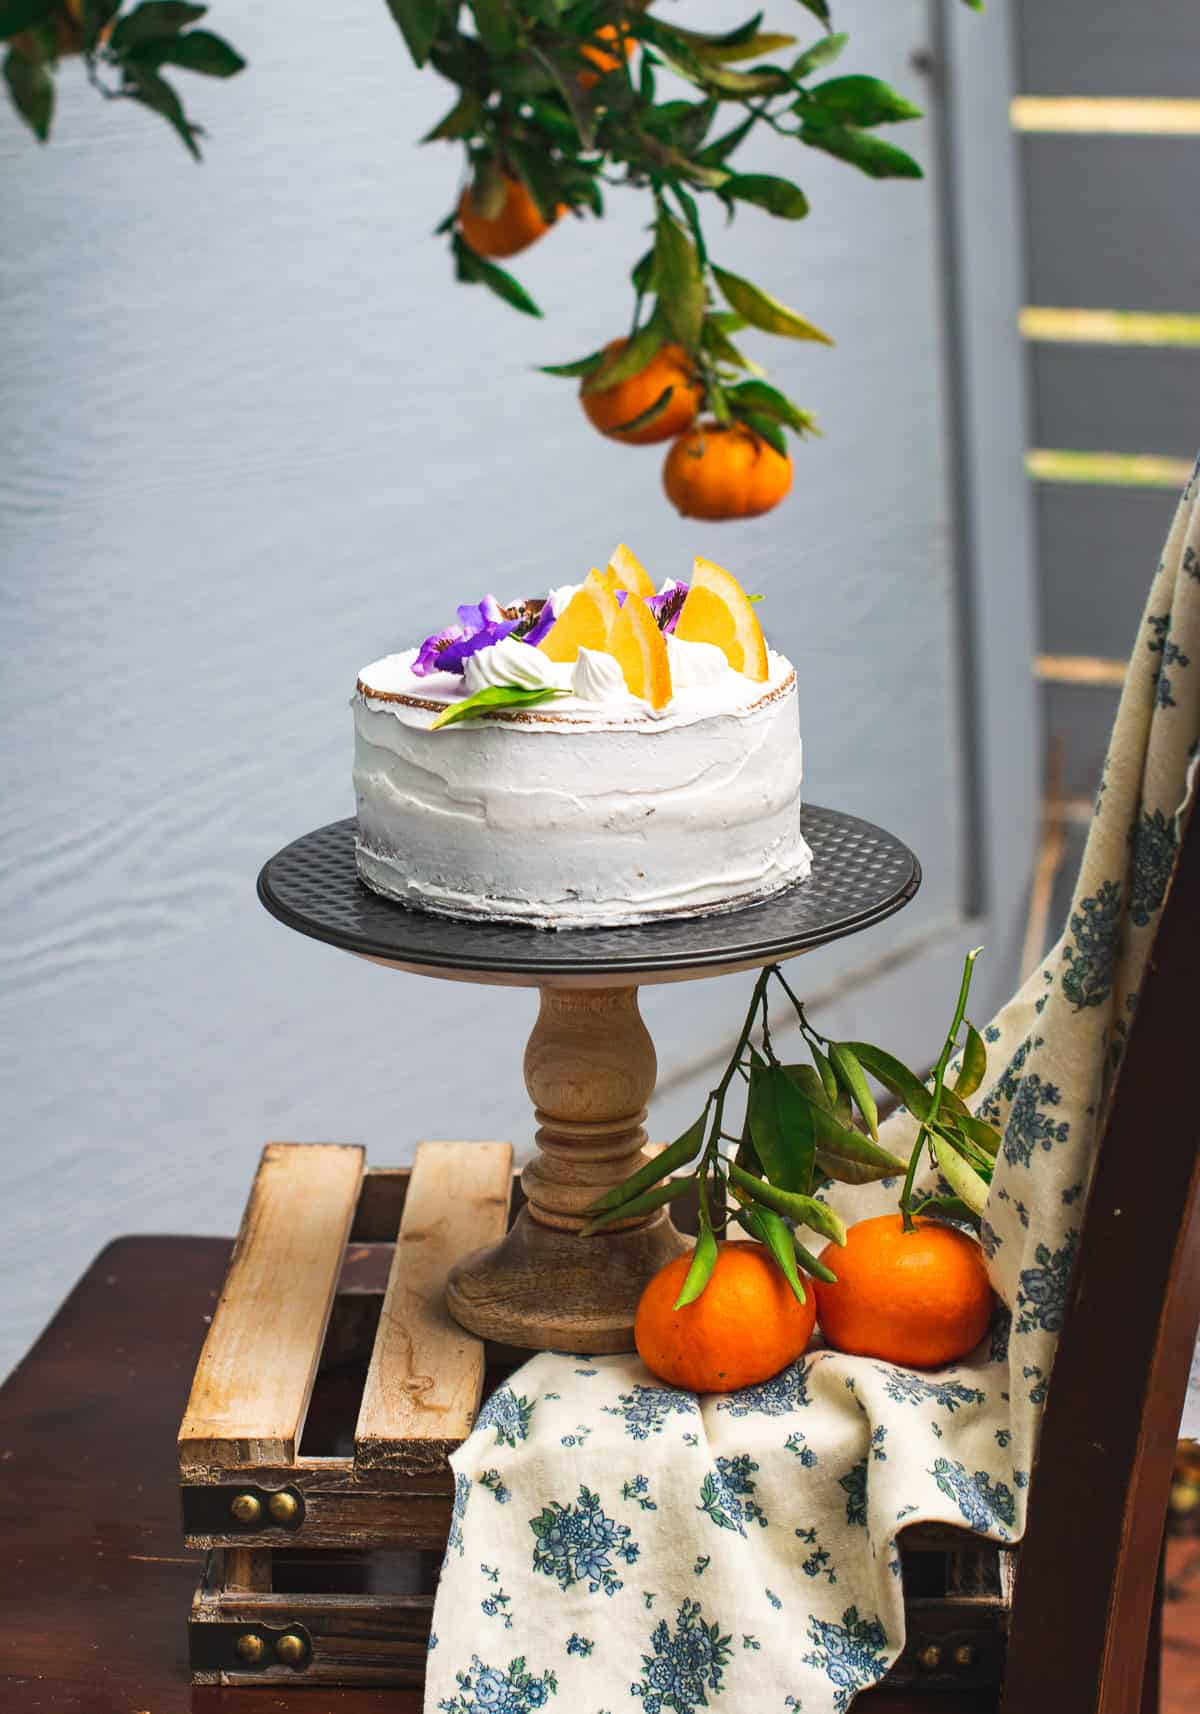 Eggless orange cake frosted and kept on a cake stand